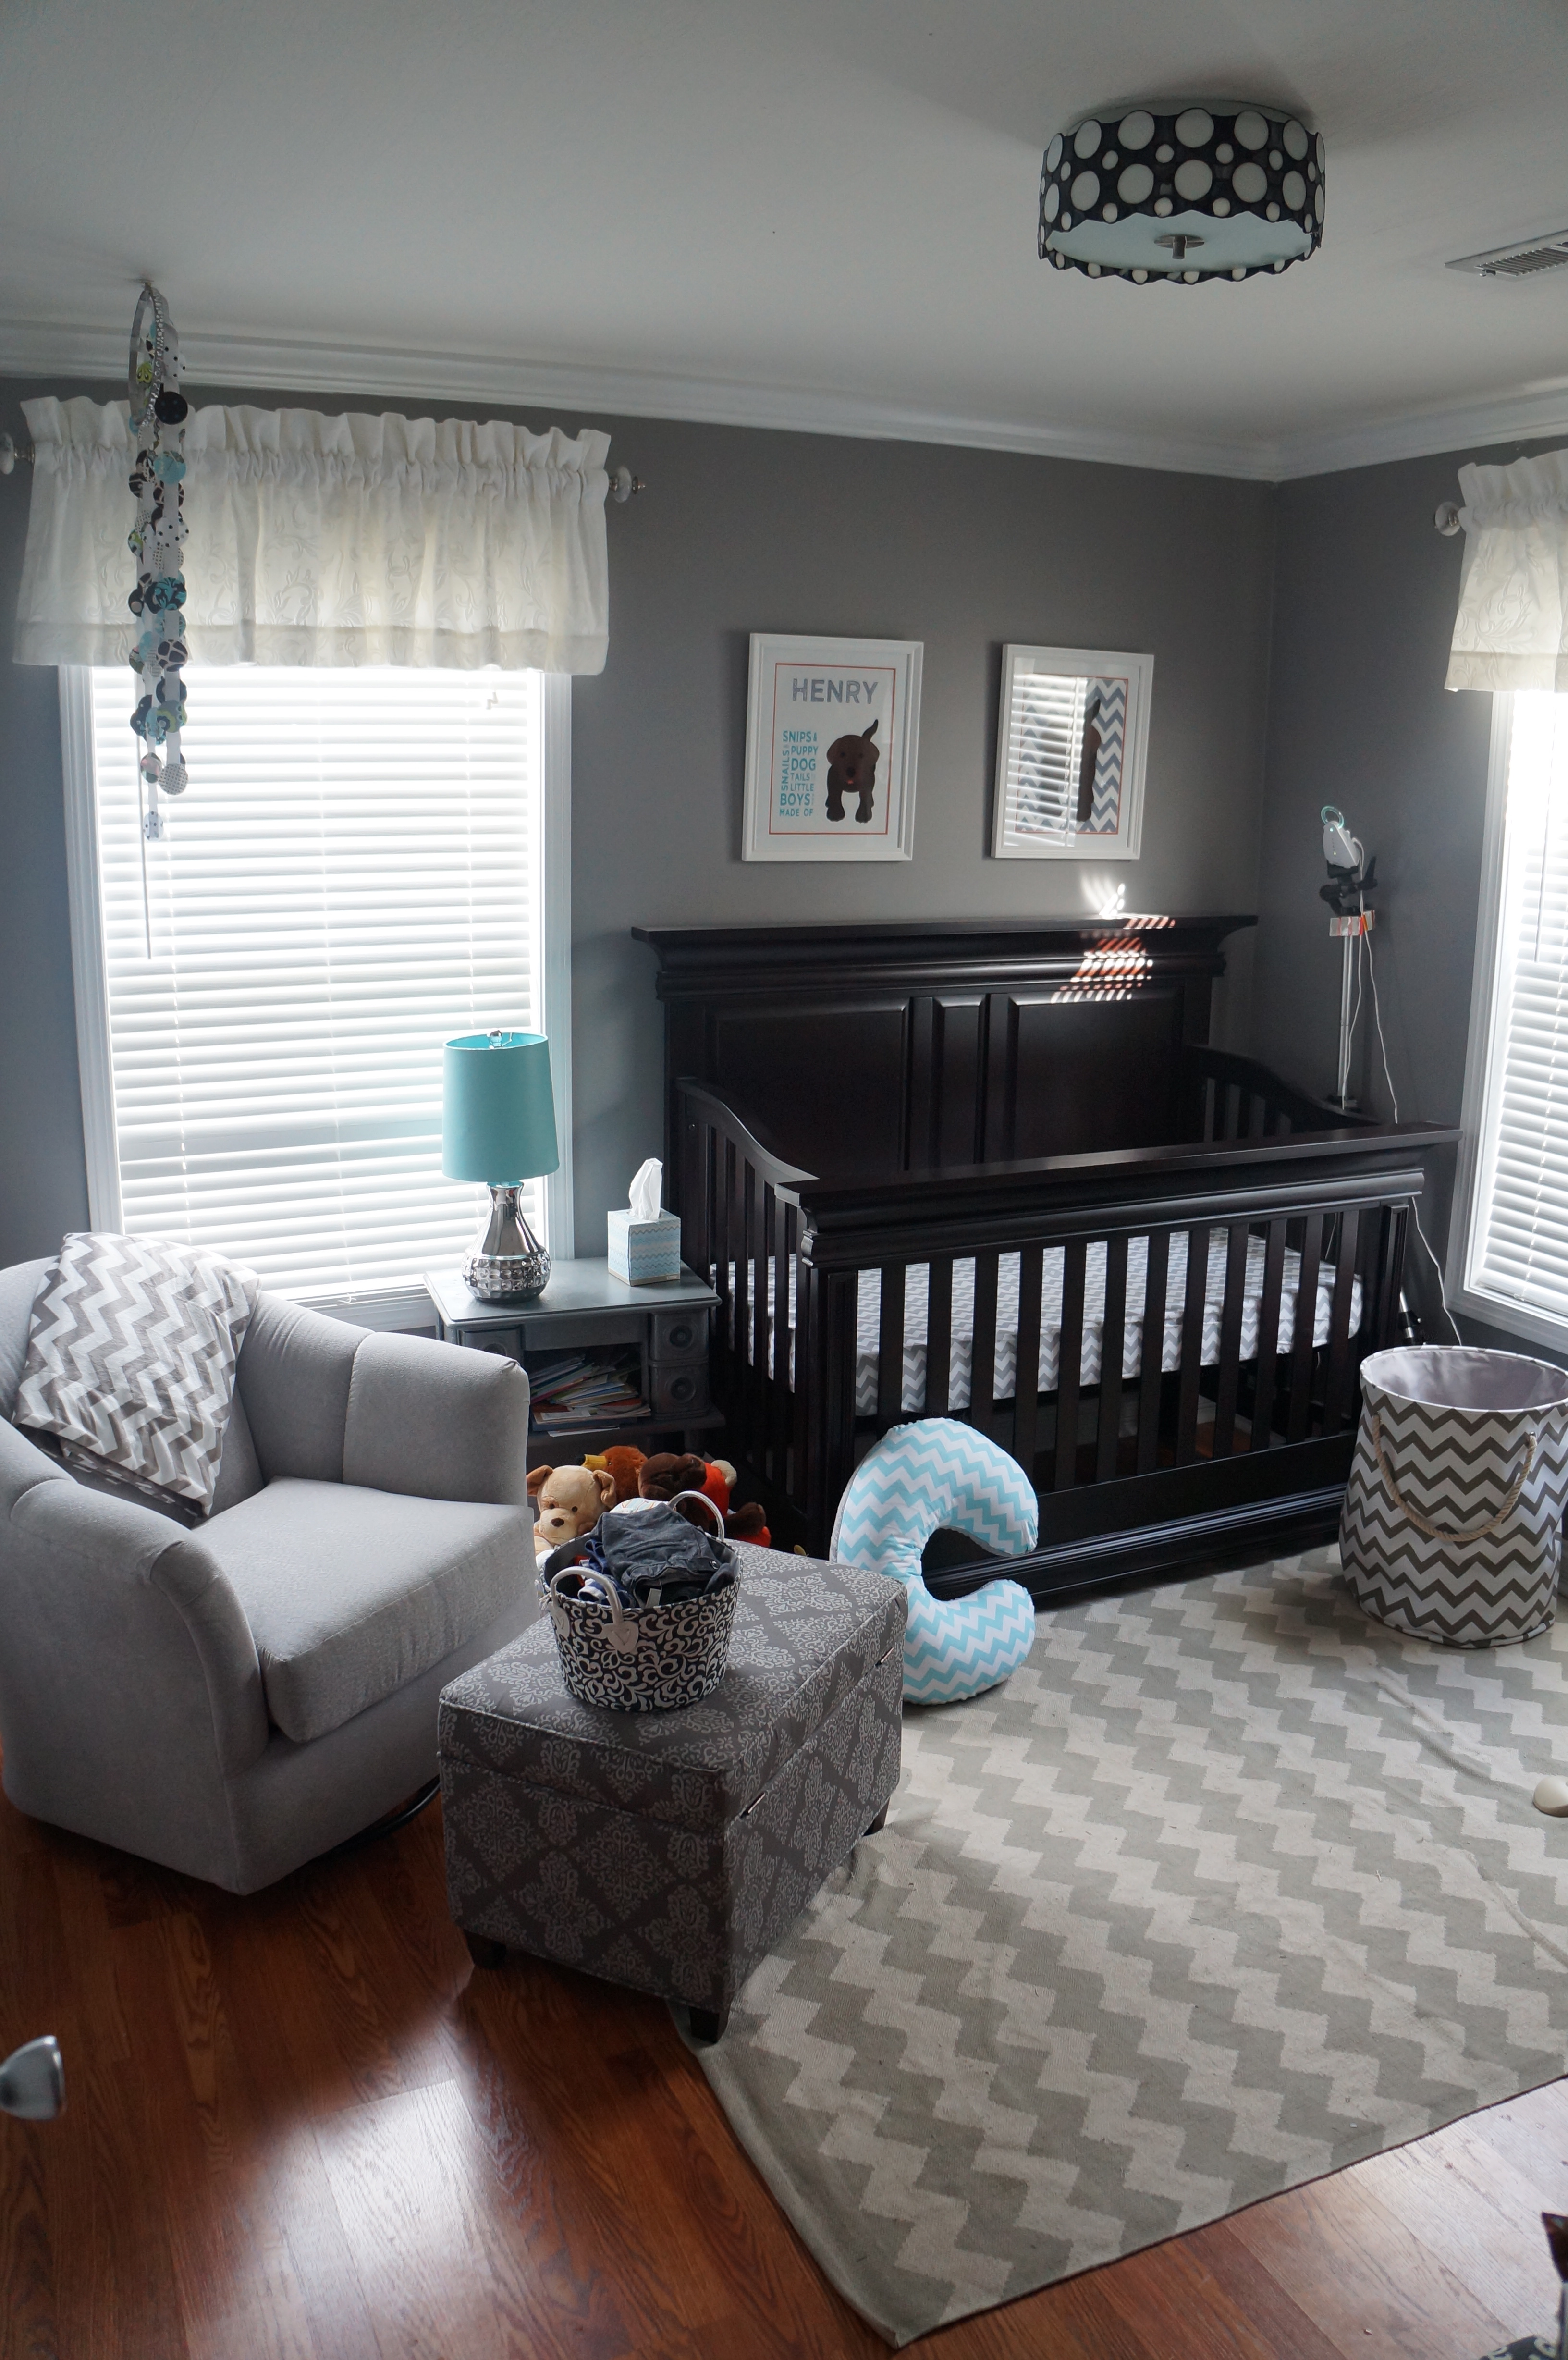 Henry 39 s chevron nursery project nursery for Baby room design ideas